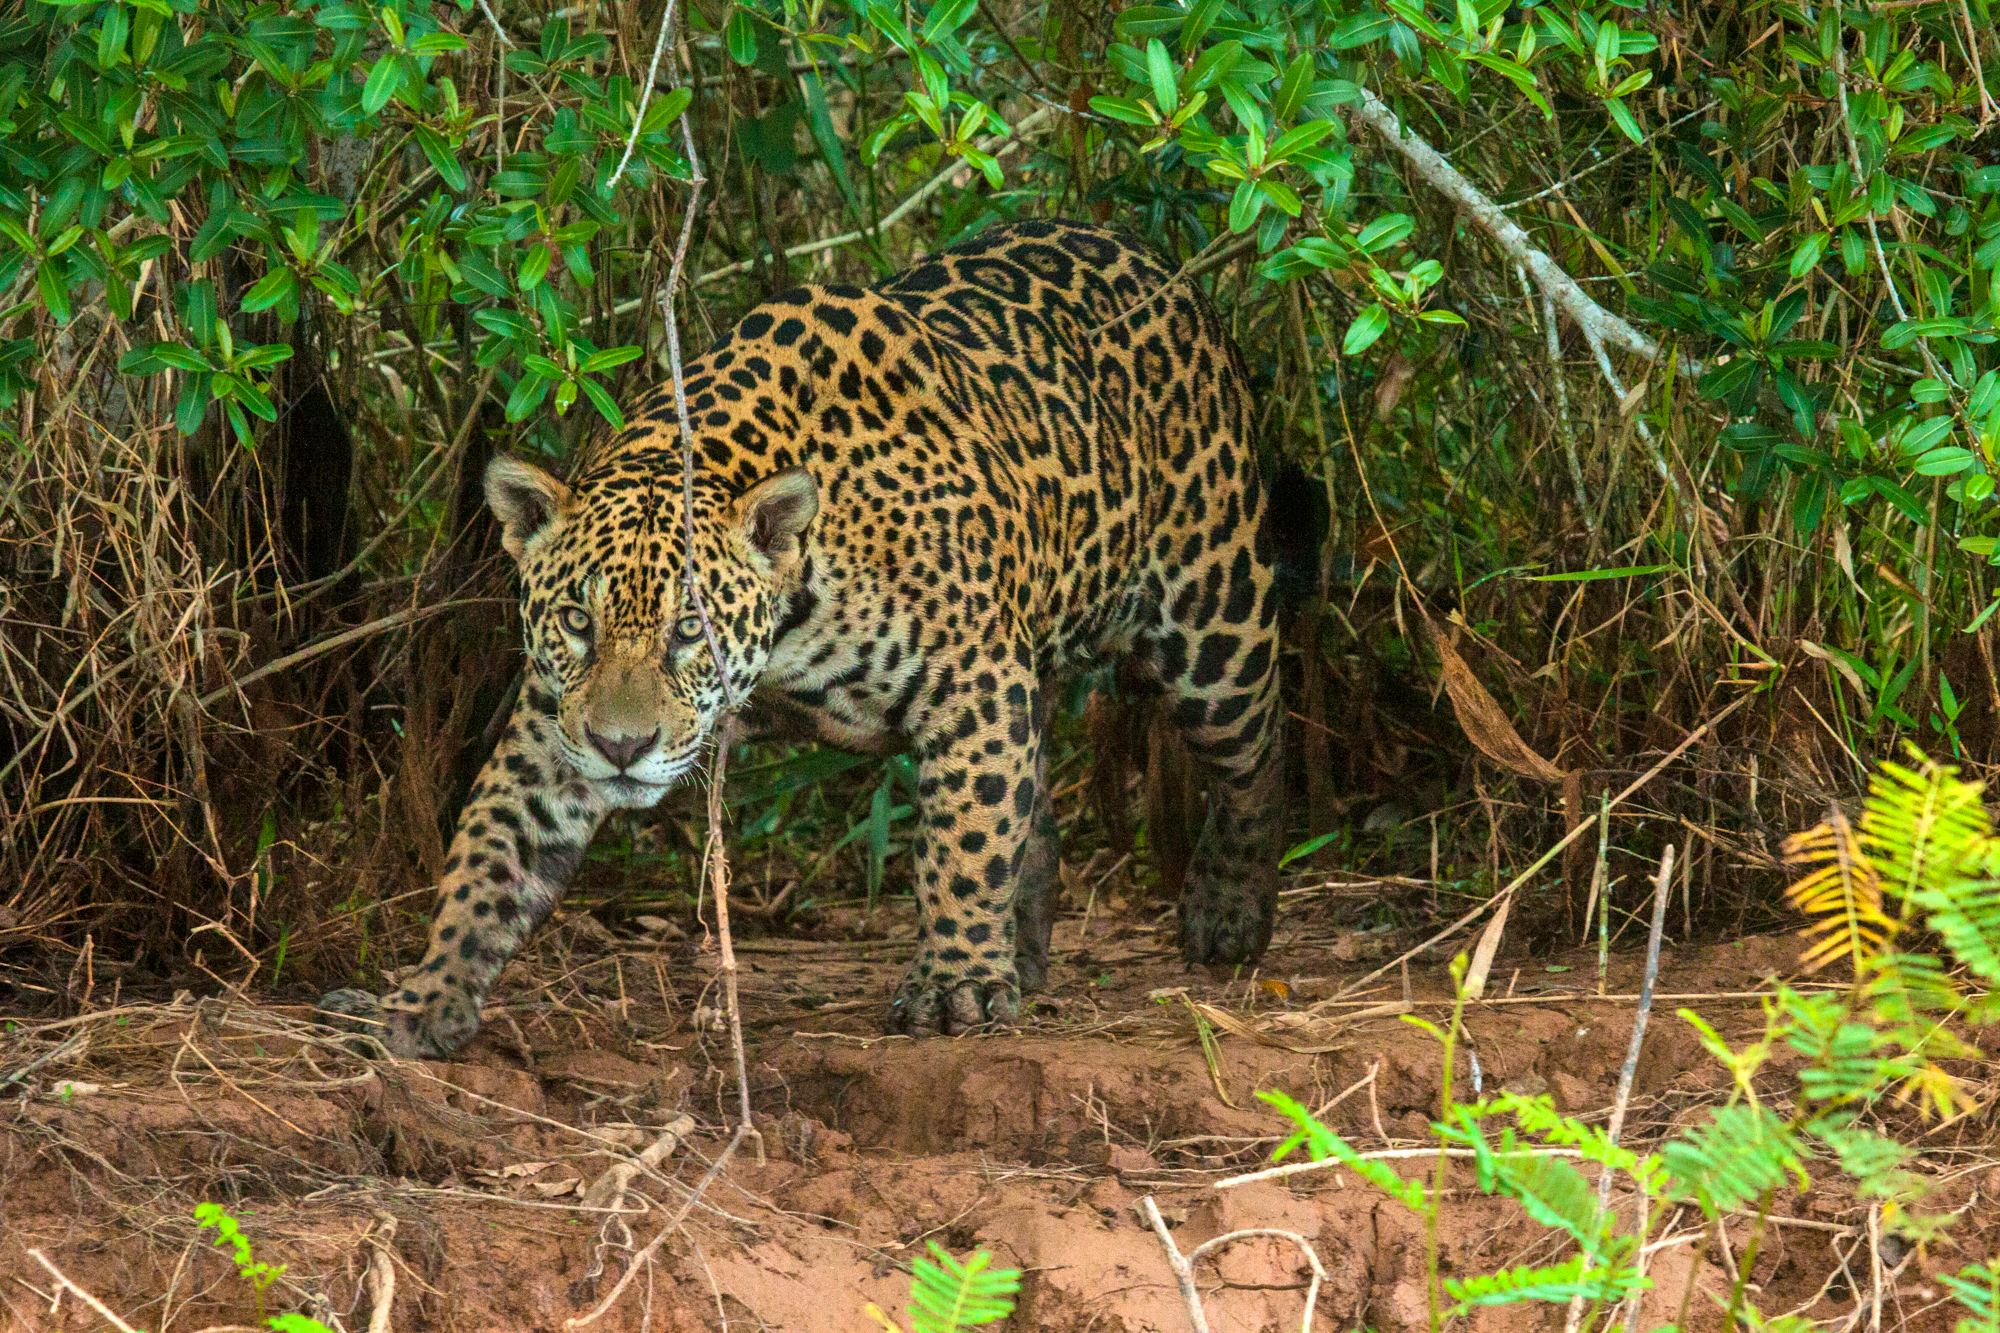 APPROACHING HUNTER (Panthera onca)